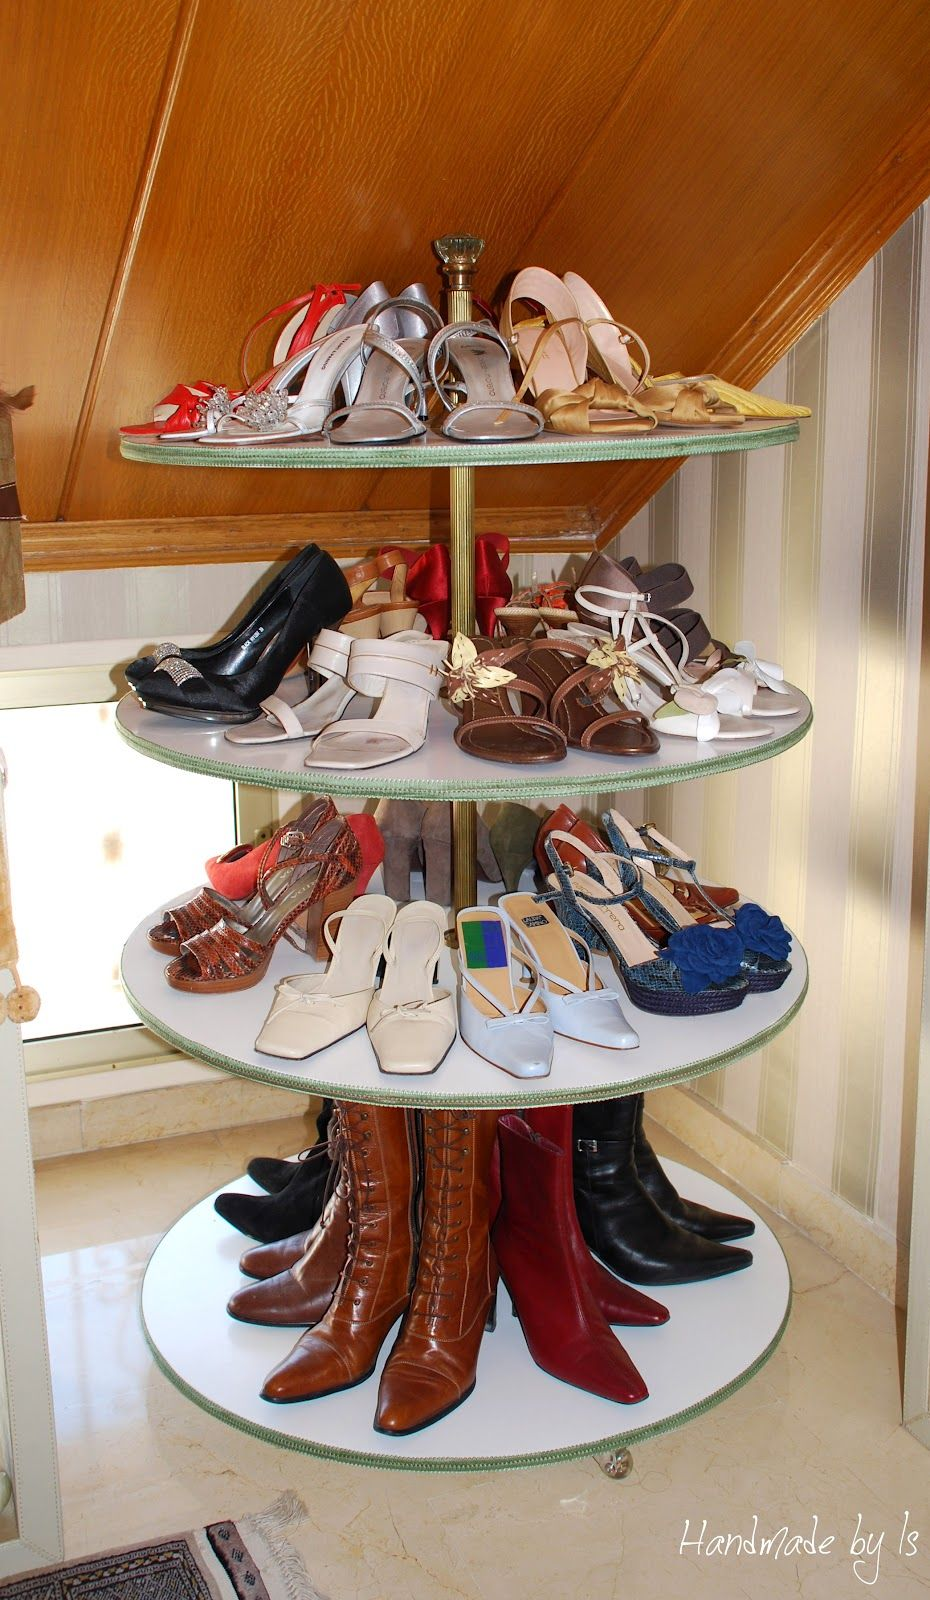 HandmadebyIs: DIY shoe rack to show them off, and it spins! including my  African Violets, fancy china, etc.